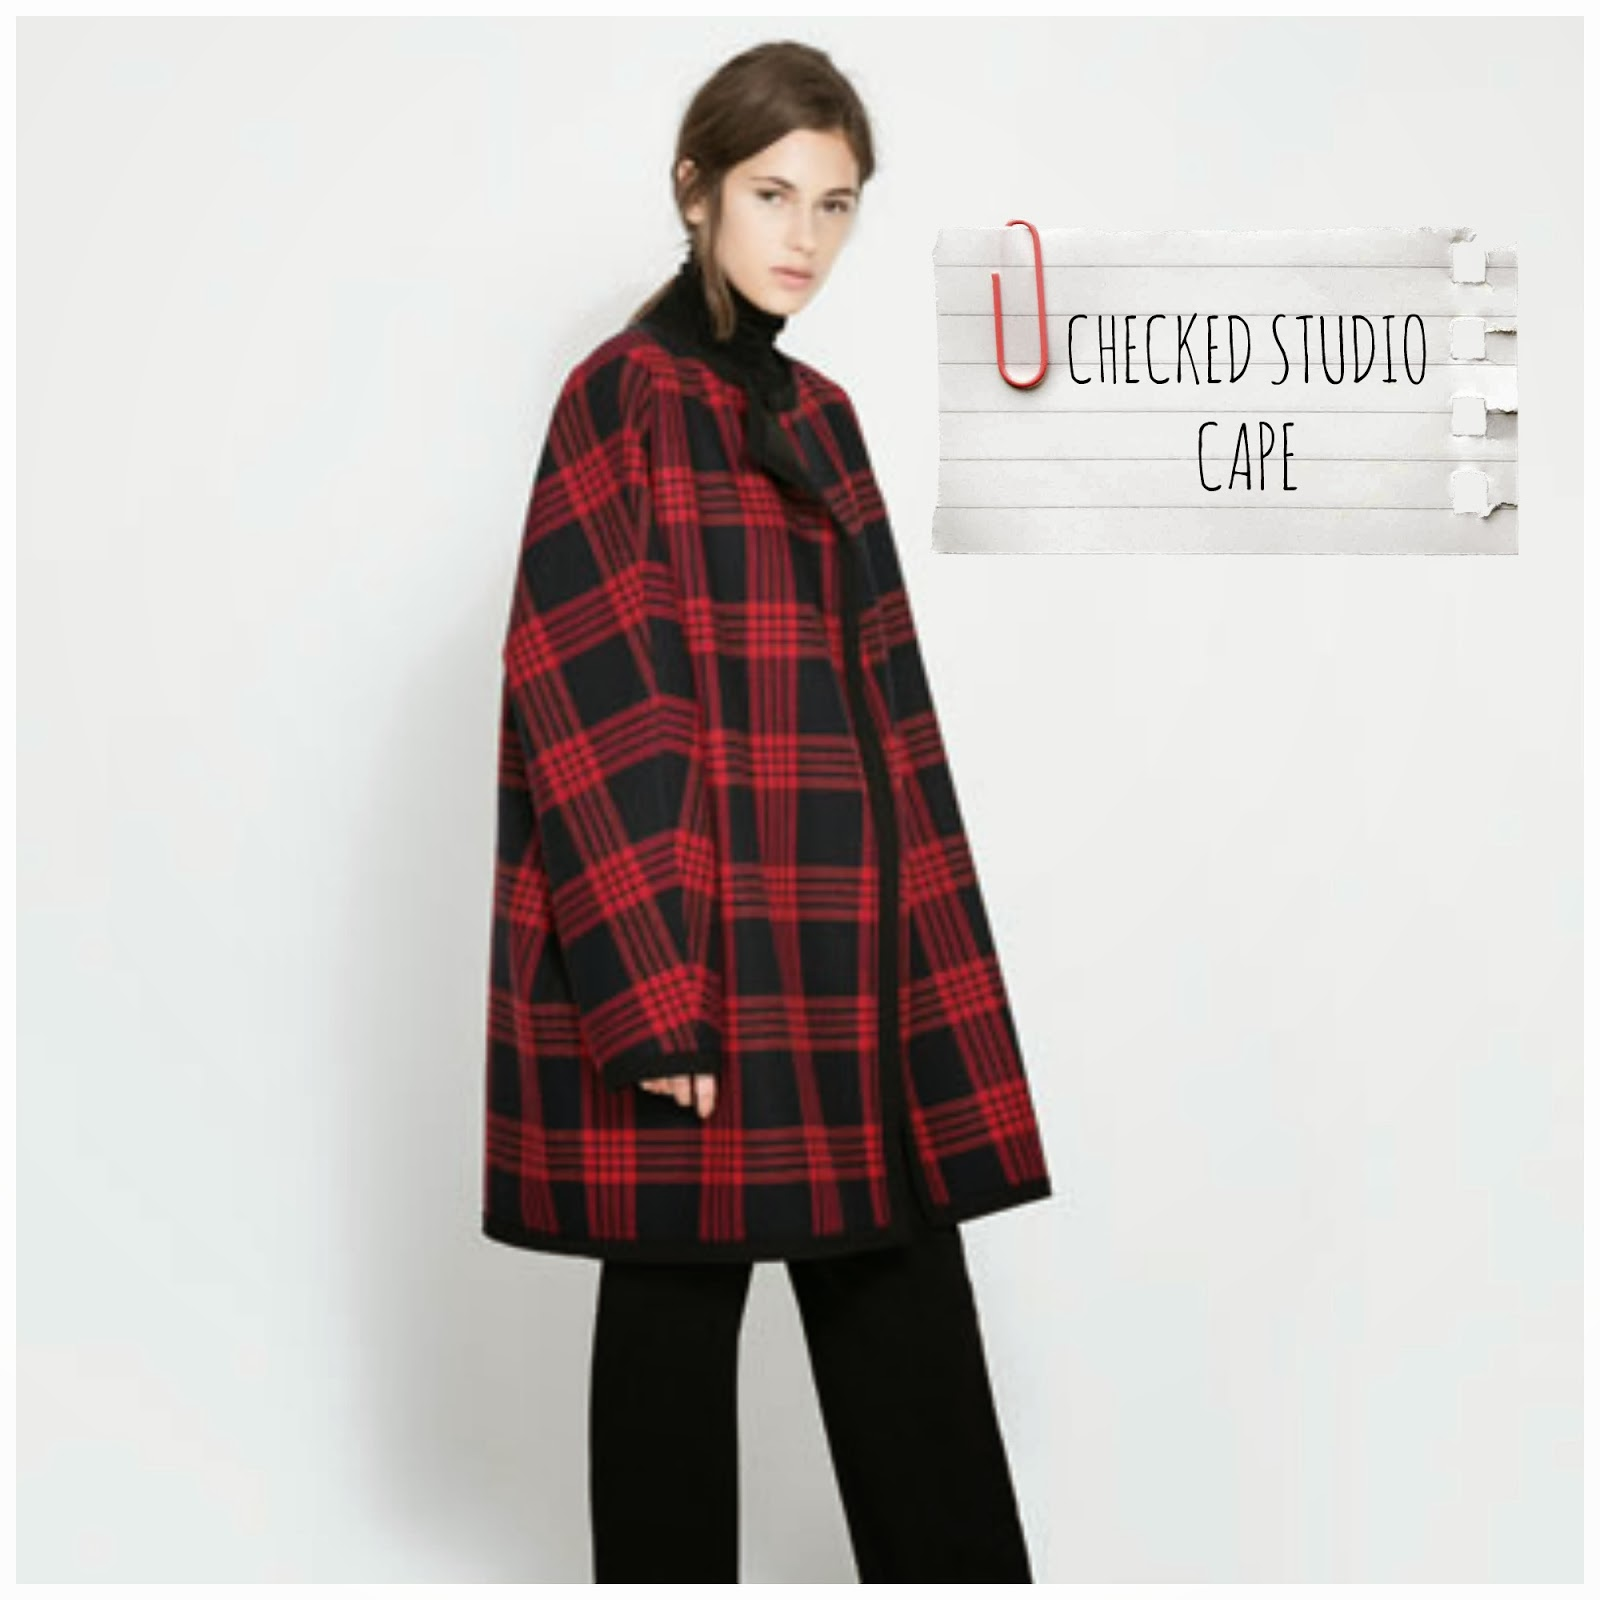 Checked Studio Cape - Zara